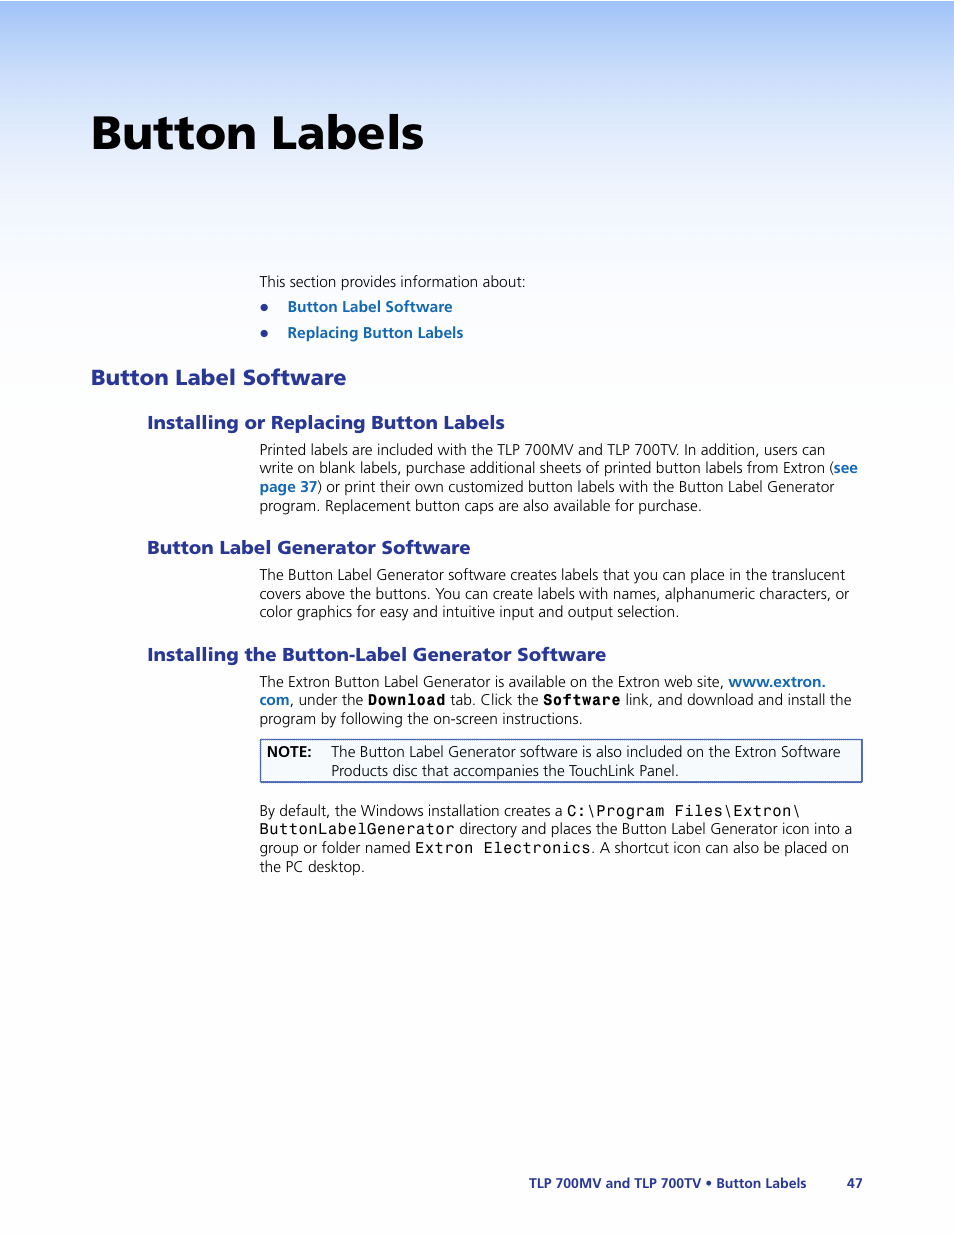 Button labels, Button label software, Installing or replacing button